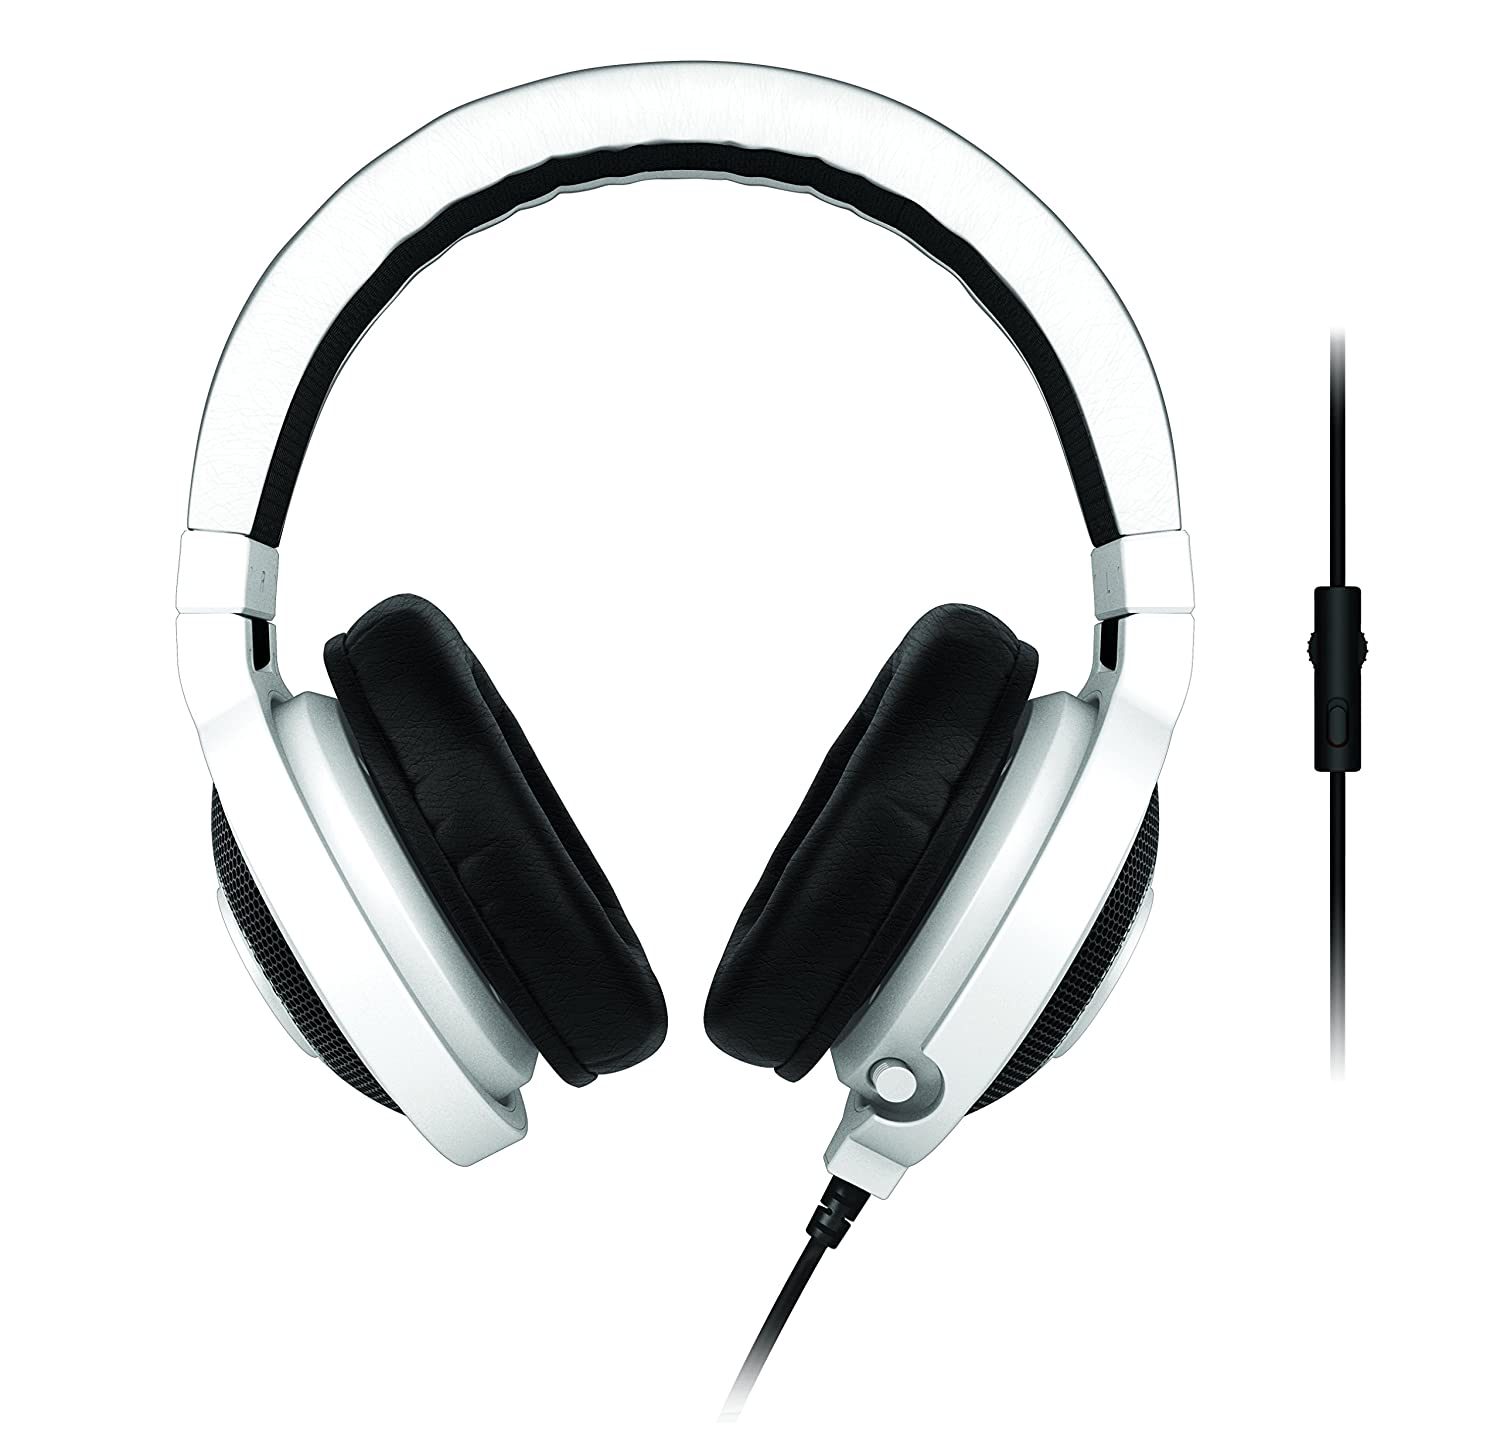 Razer Kraken 7.1 V2: 7.1 Surround Sound - Retractable Noise-Cancelling Mic - Lightweight Aluminum Frame - Gaming Headset Works with PC, PS4, Xbox One, Switch, Mobile Devices - Black Razer Inc. RZ04-02060200-R3U1